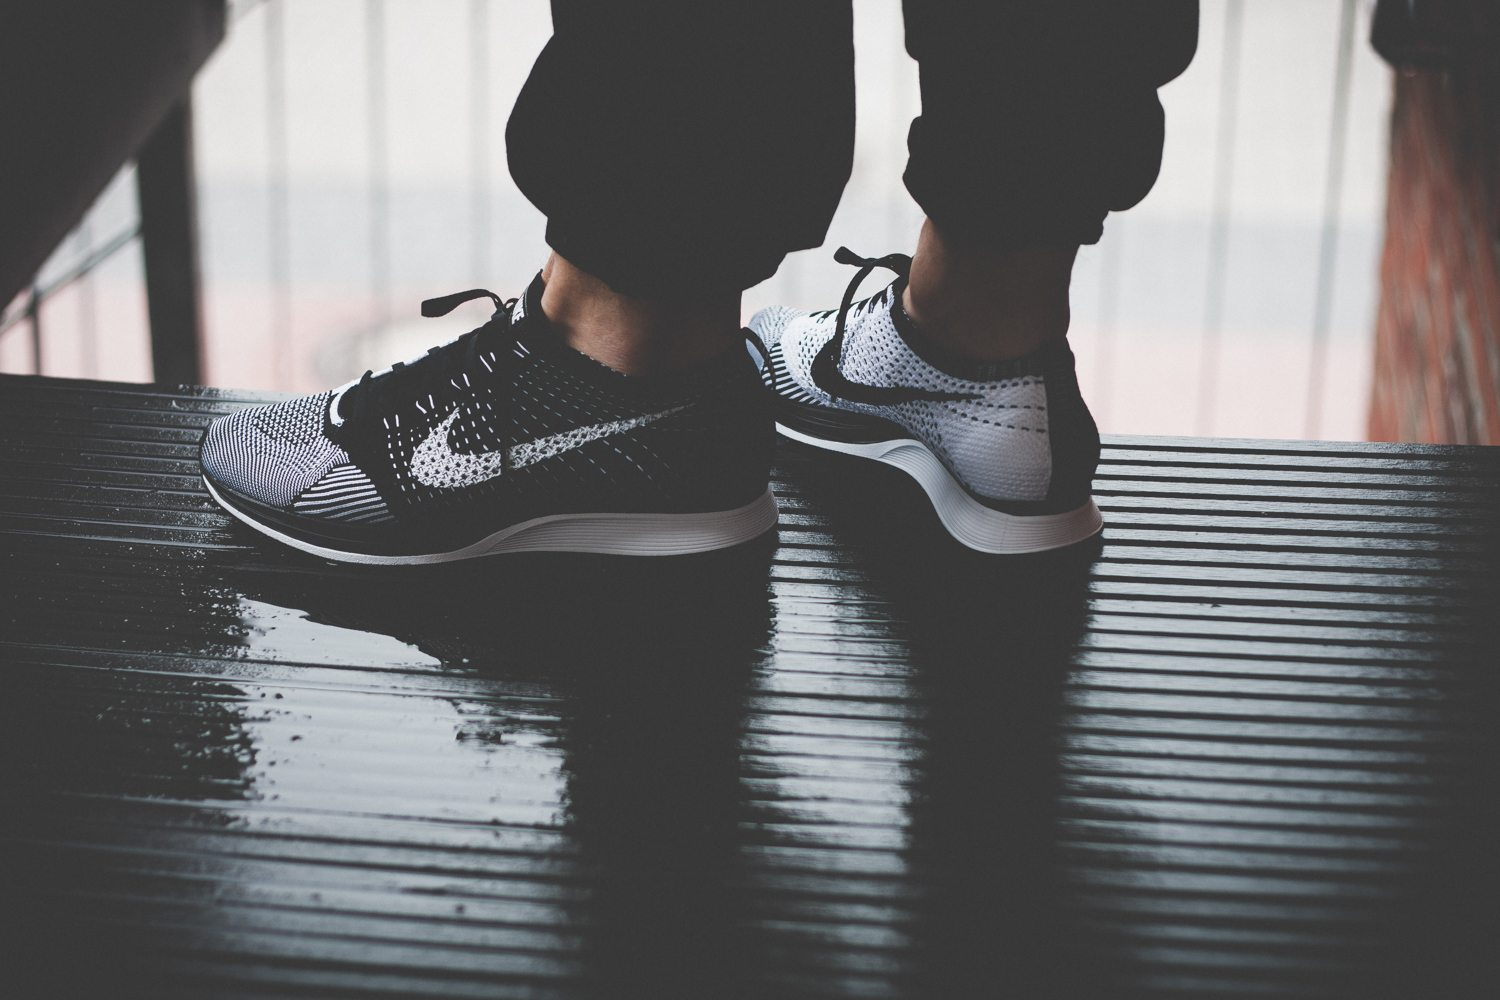 Nike Flyknit Racer Black White Review 14